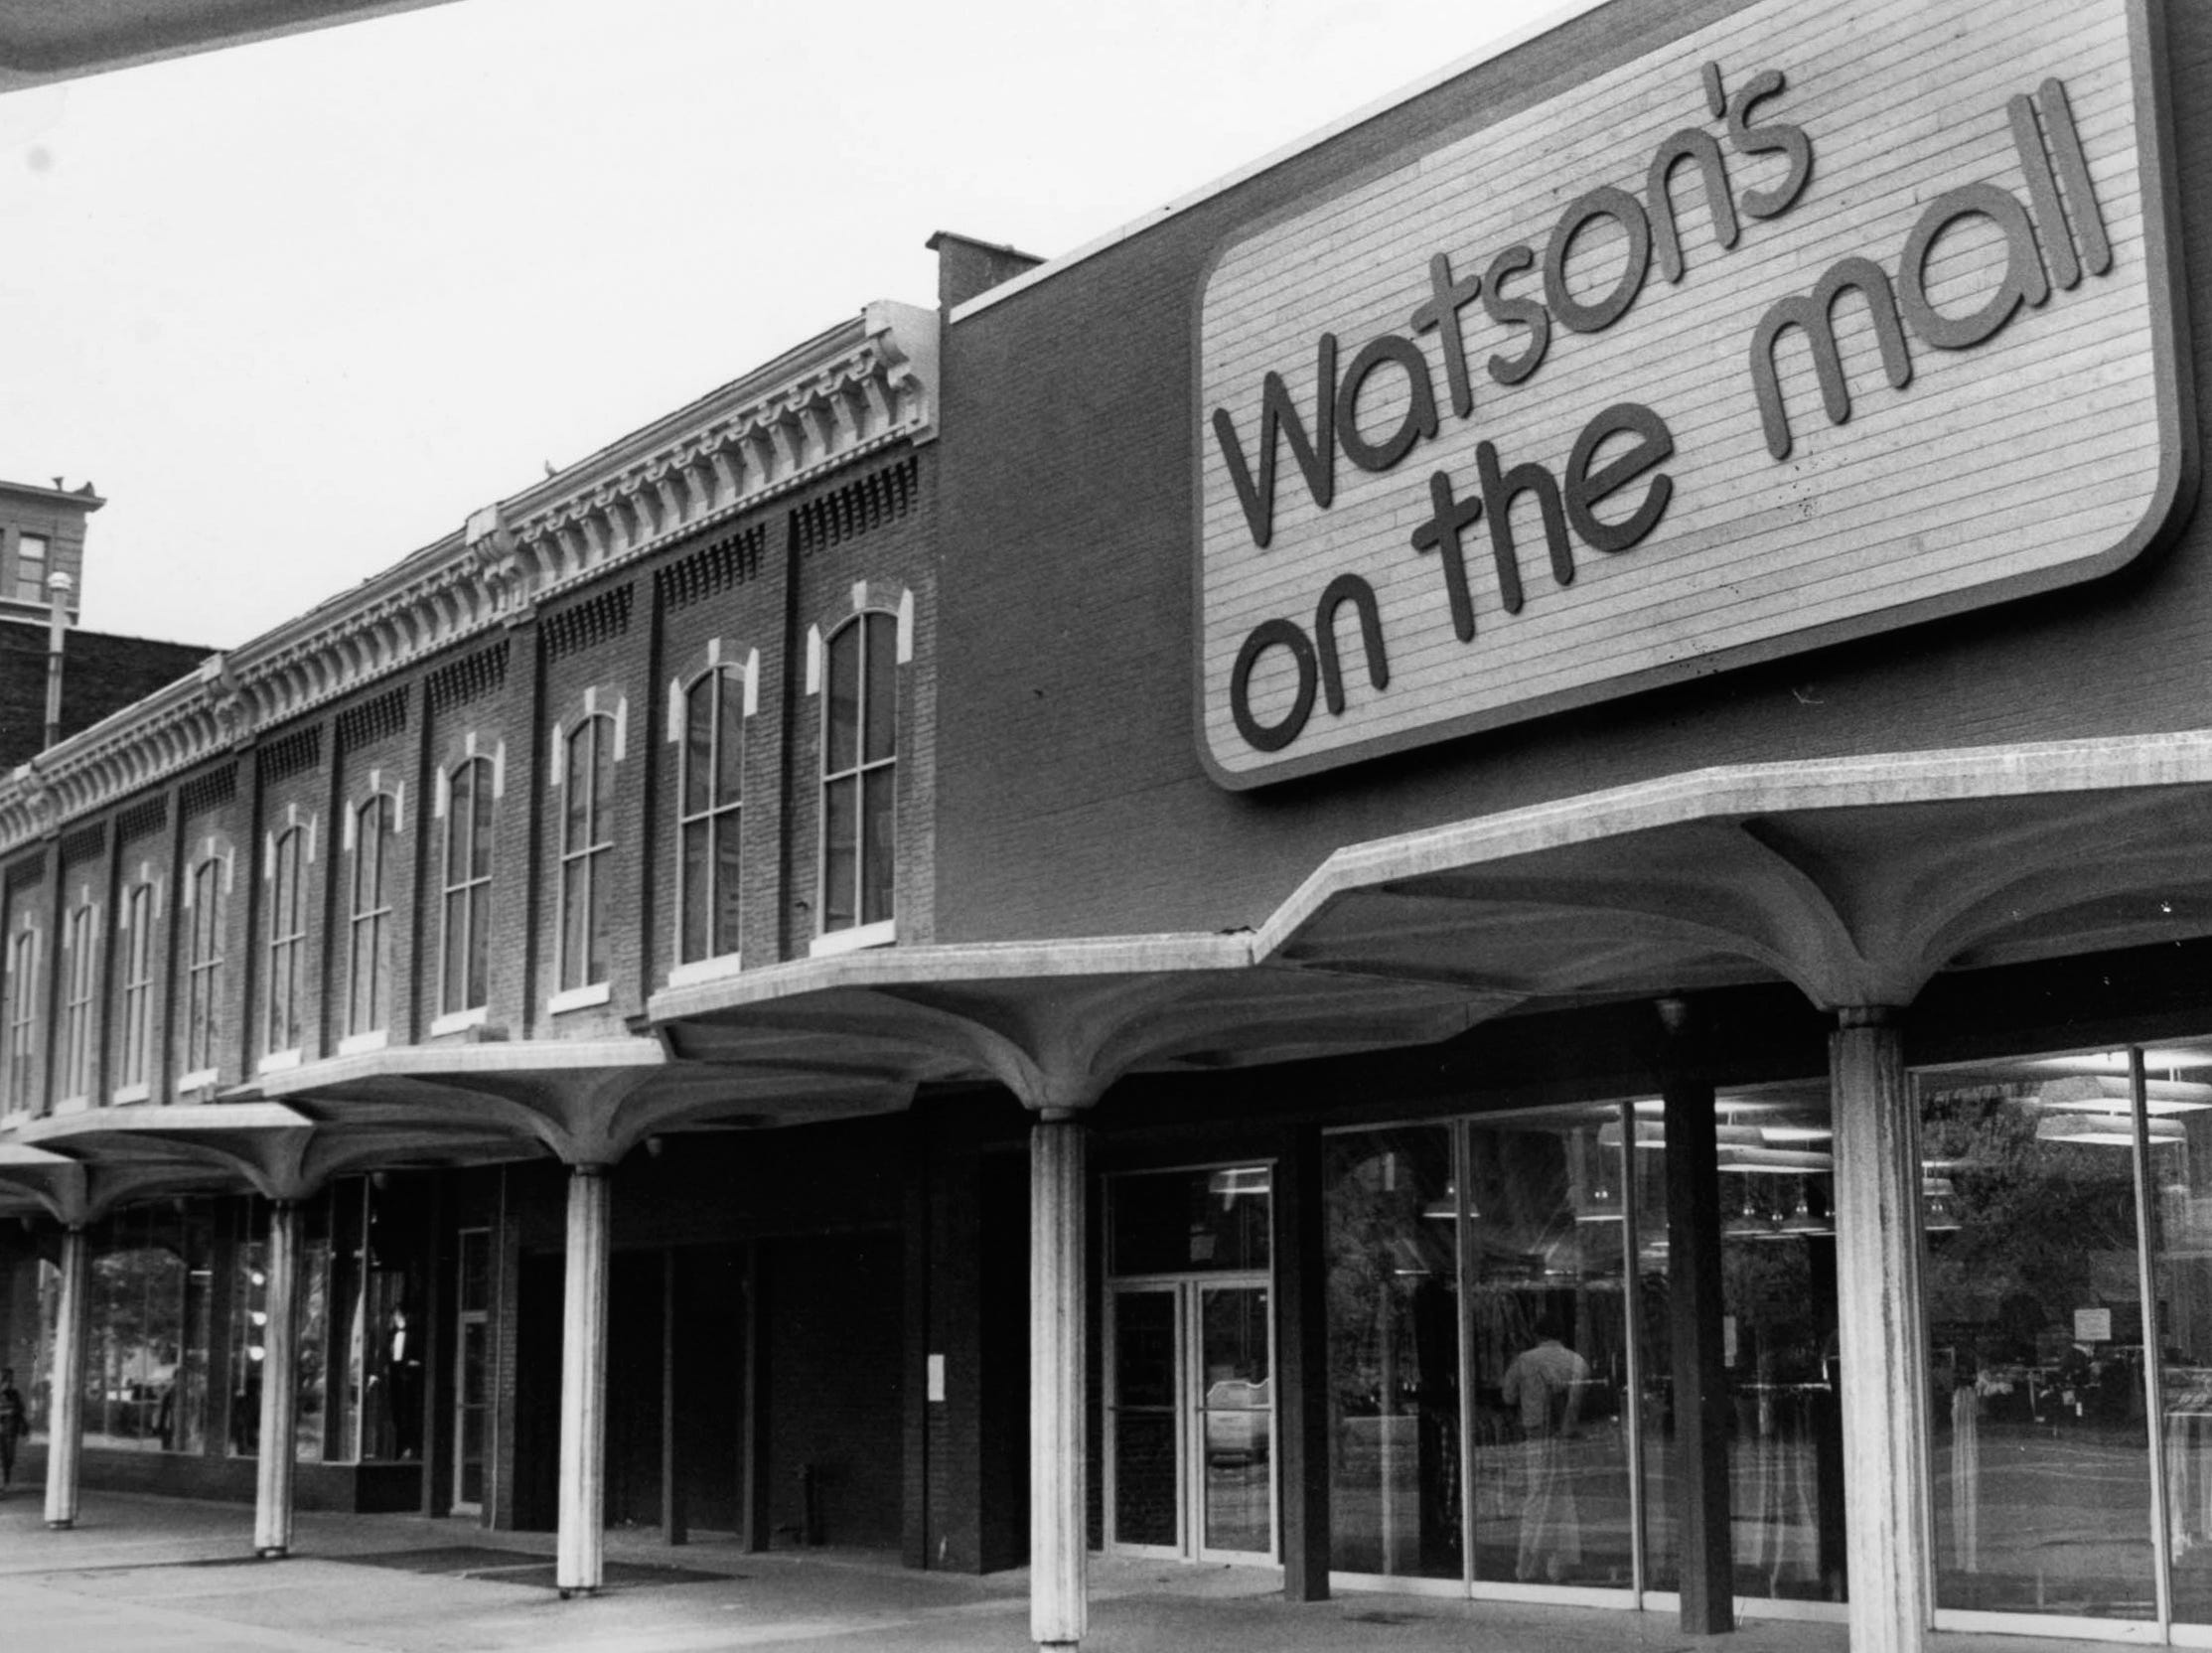 Watson's on the Mall, pictured Nov. 19, 1978, at Market Square Mall.